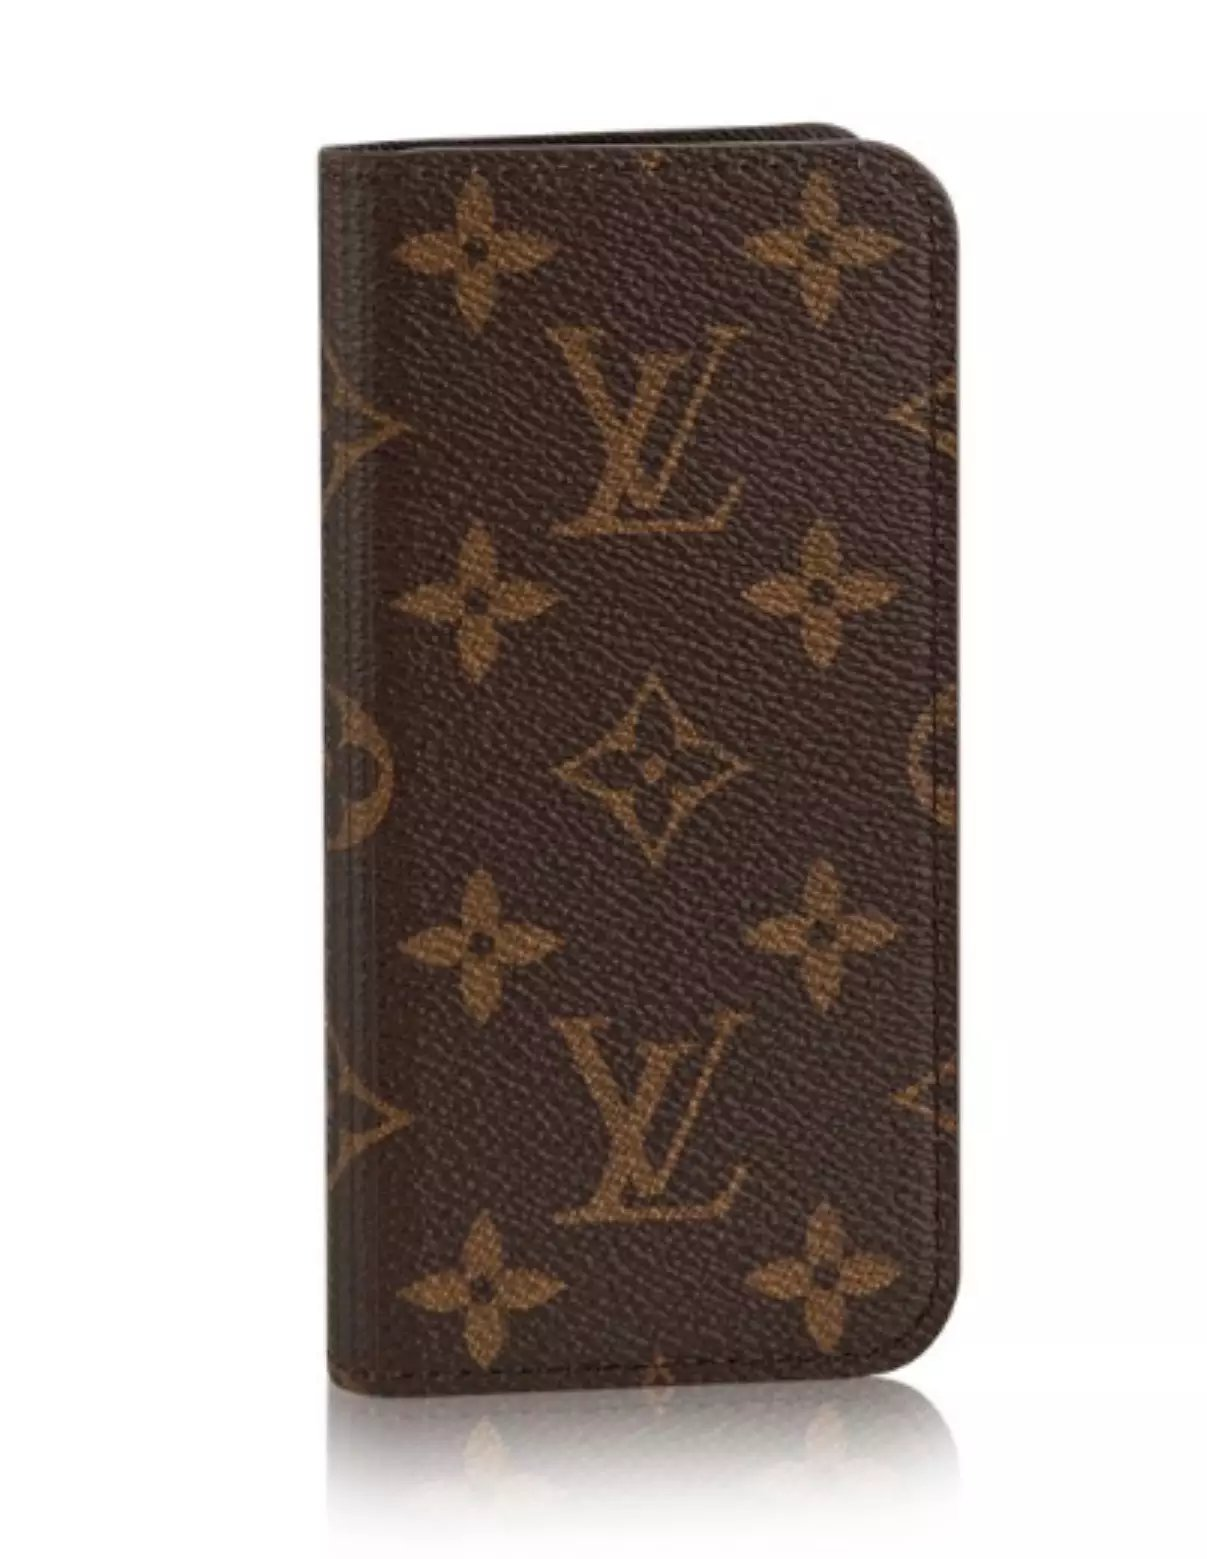 handyhülle iphone selbst gestalten iphone case selber machen Louis Vuitton iphone 8 Plus hüllen ipfon 8 Plus iphone 8 Plus hardca8 Plus elber gestalten iphone 8 Plus produktion handycover 8 Pluslbst gestalten iphone hülle was8 Plusrdicht iphone 8 Plus a8 Plus hwarz